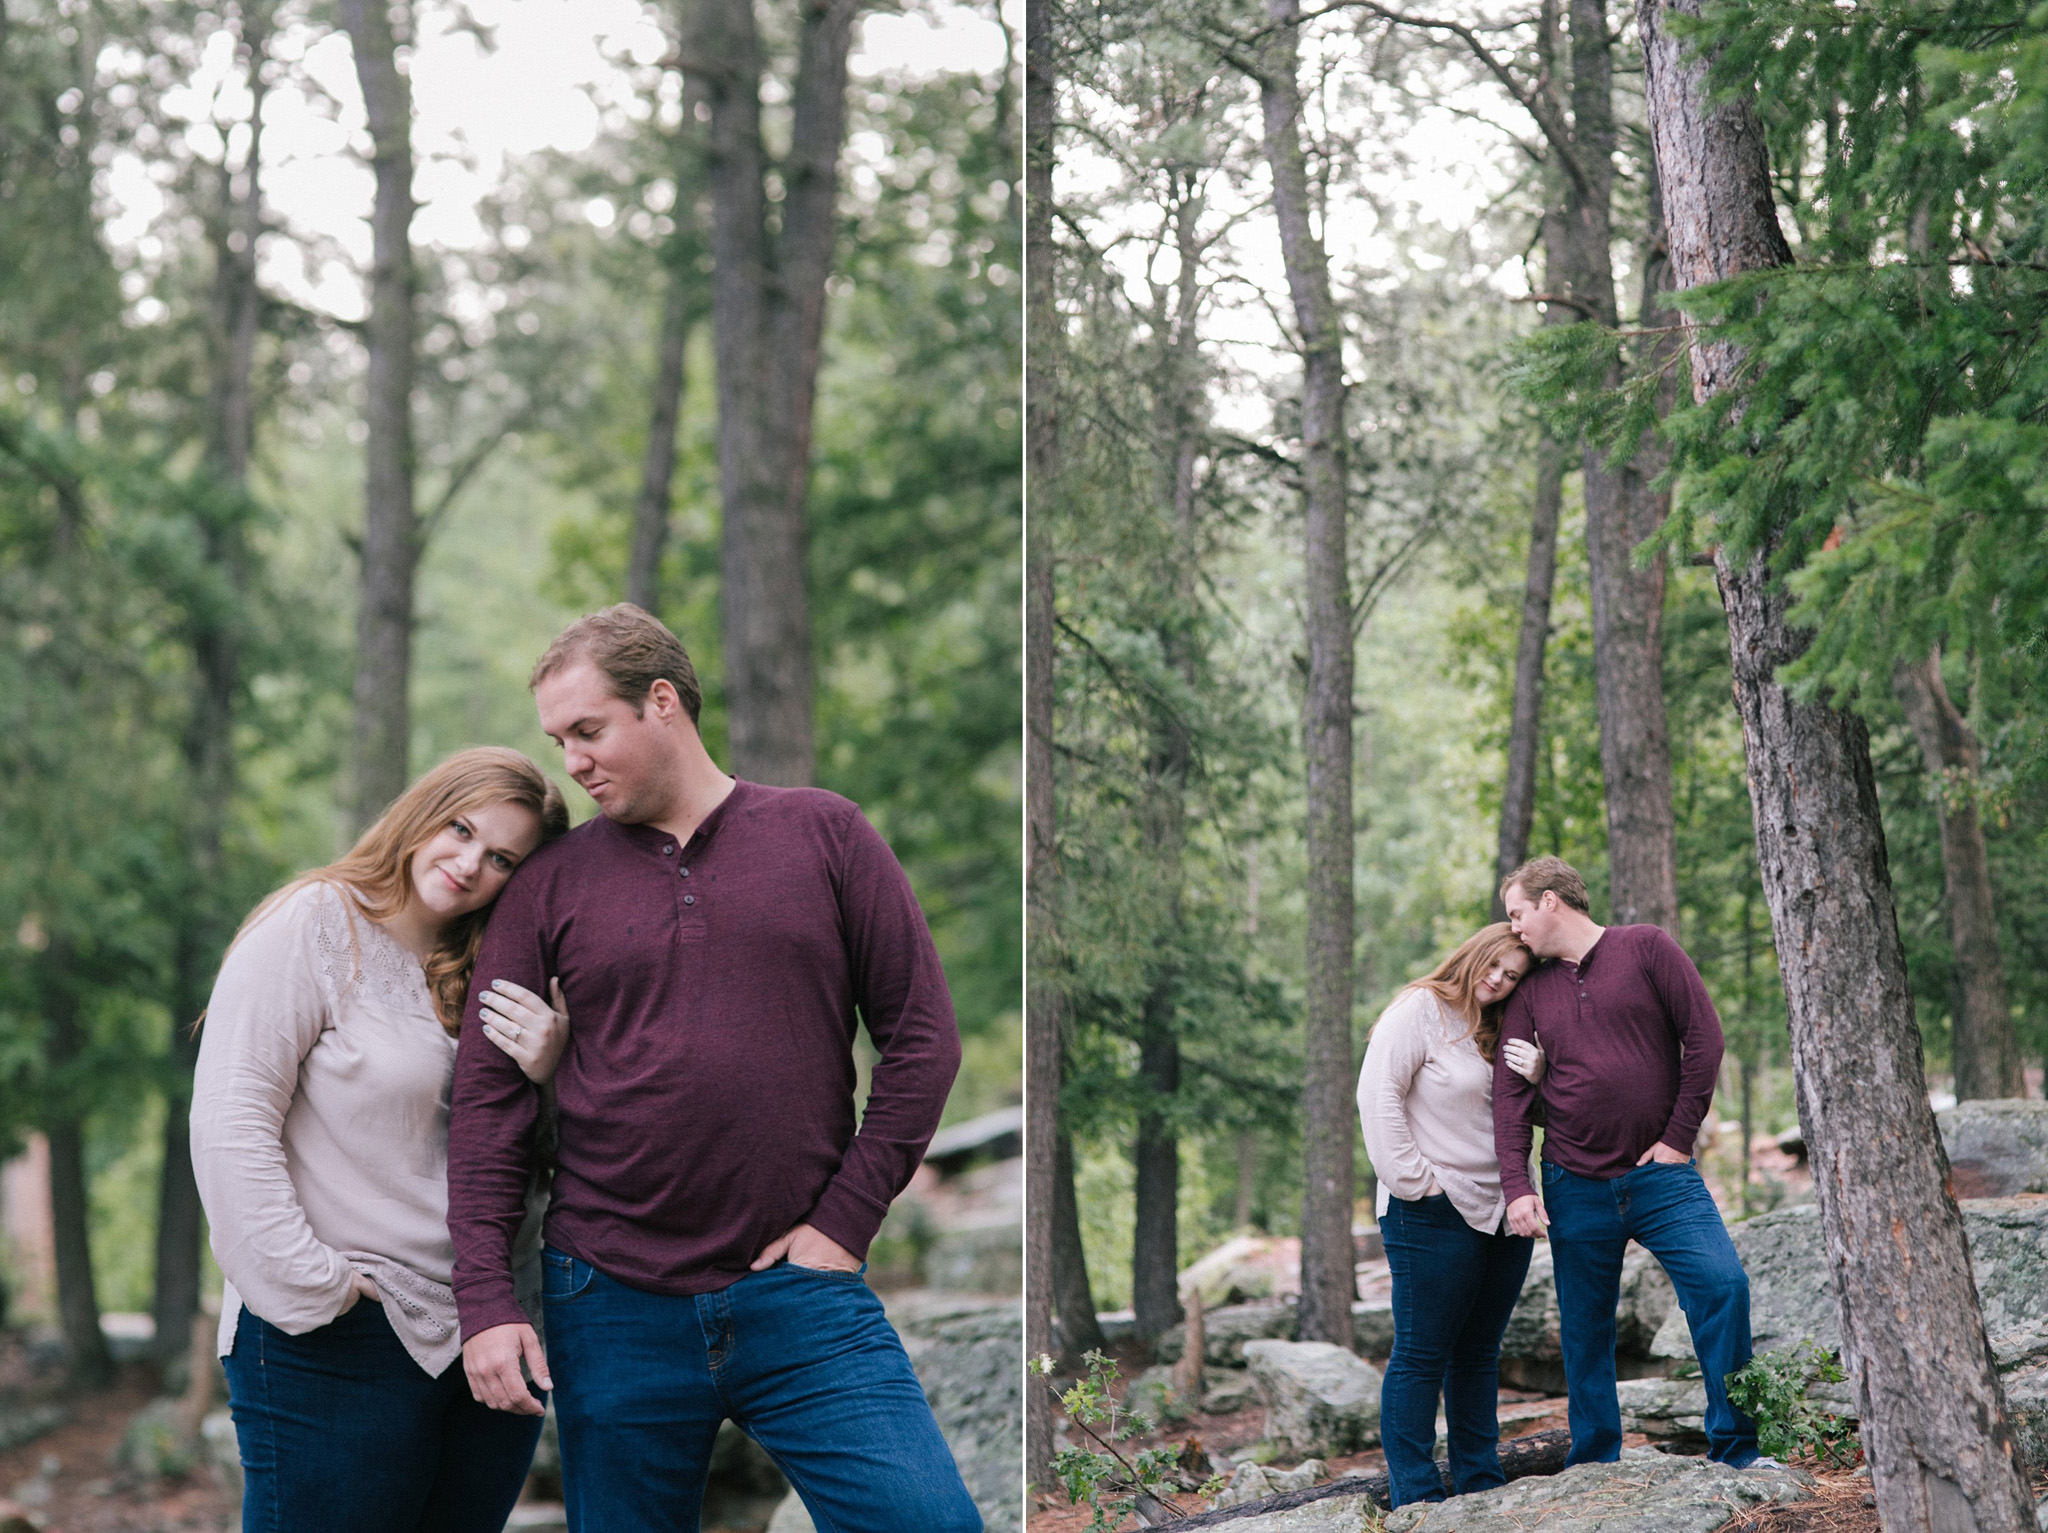 mogollon rim northern arizona forest engagement session